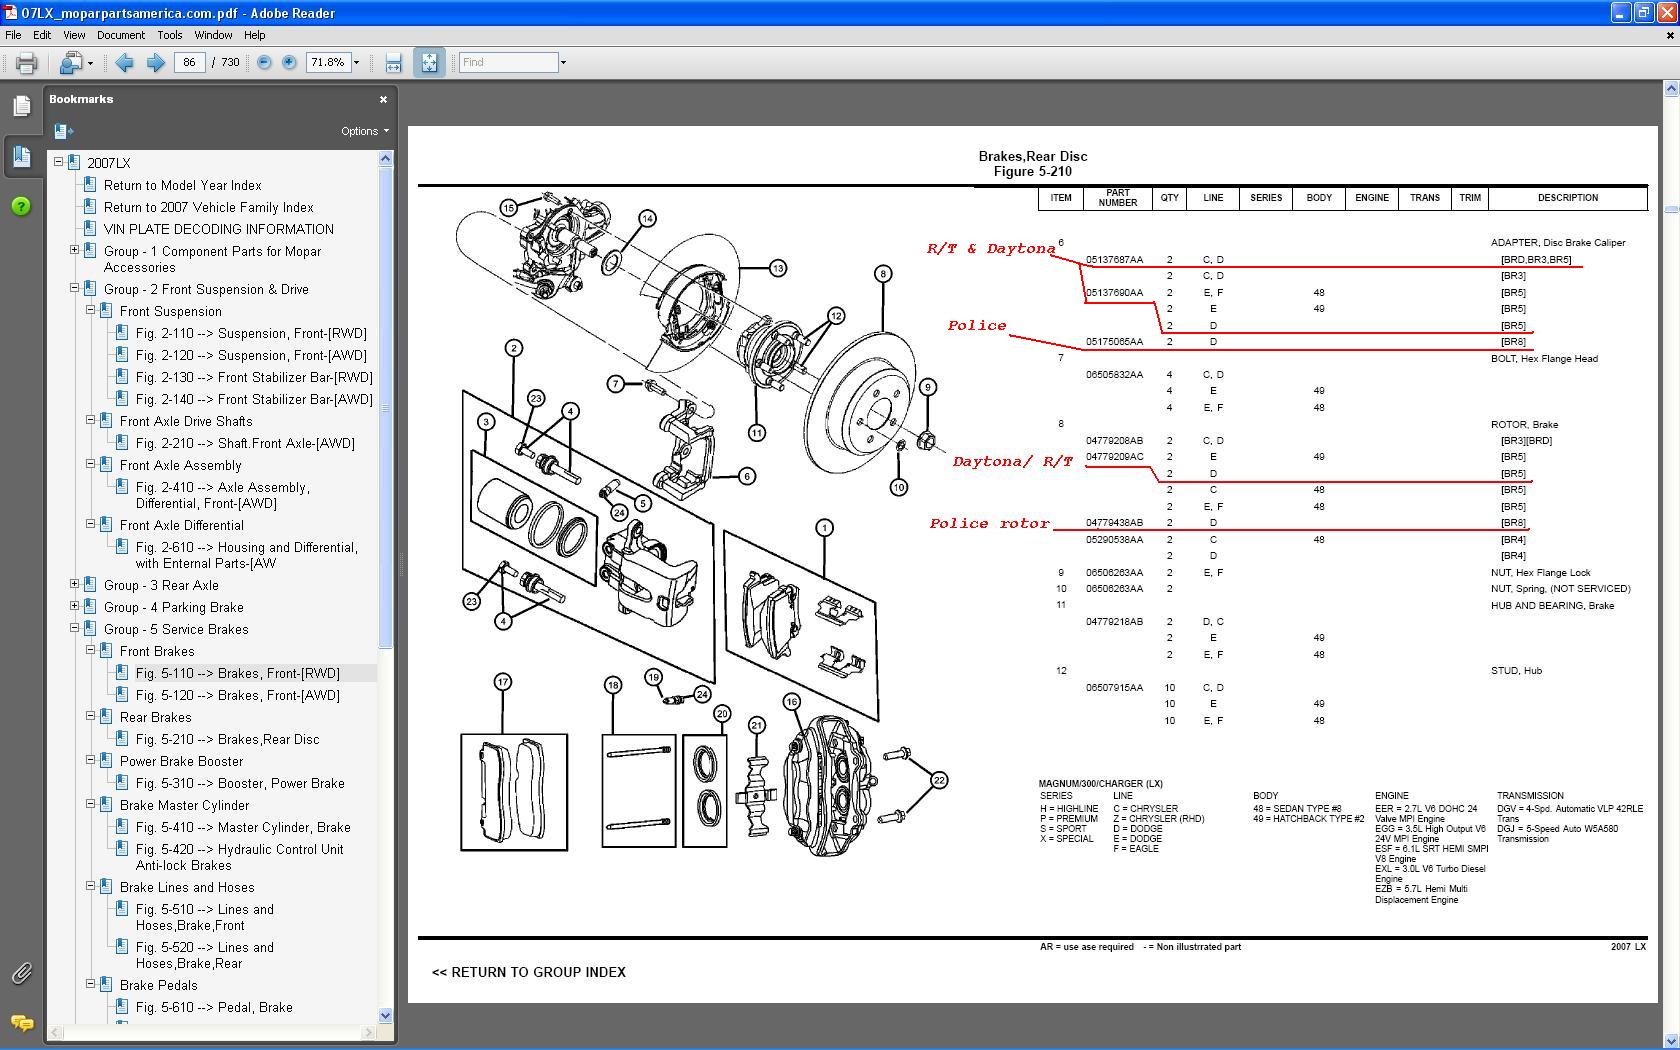 Pj Trailer Wiring With Junction Box Diagrams also How To Draw A Dragon Ball likewise 1968 Gtx Wiring Diagram also Range Rover P Wiring Diagram Rolex Daytona also Electrical Power Distribution Center Relays Fuses Under Hood. on dodge charger diagram